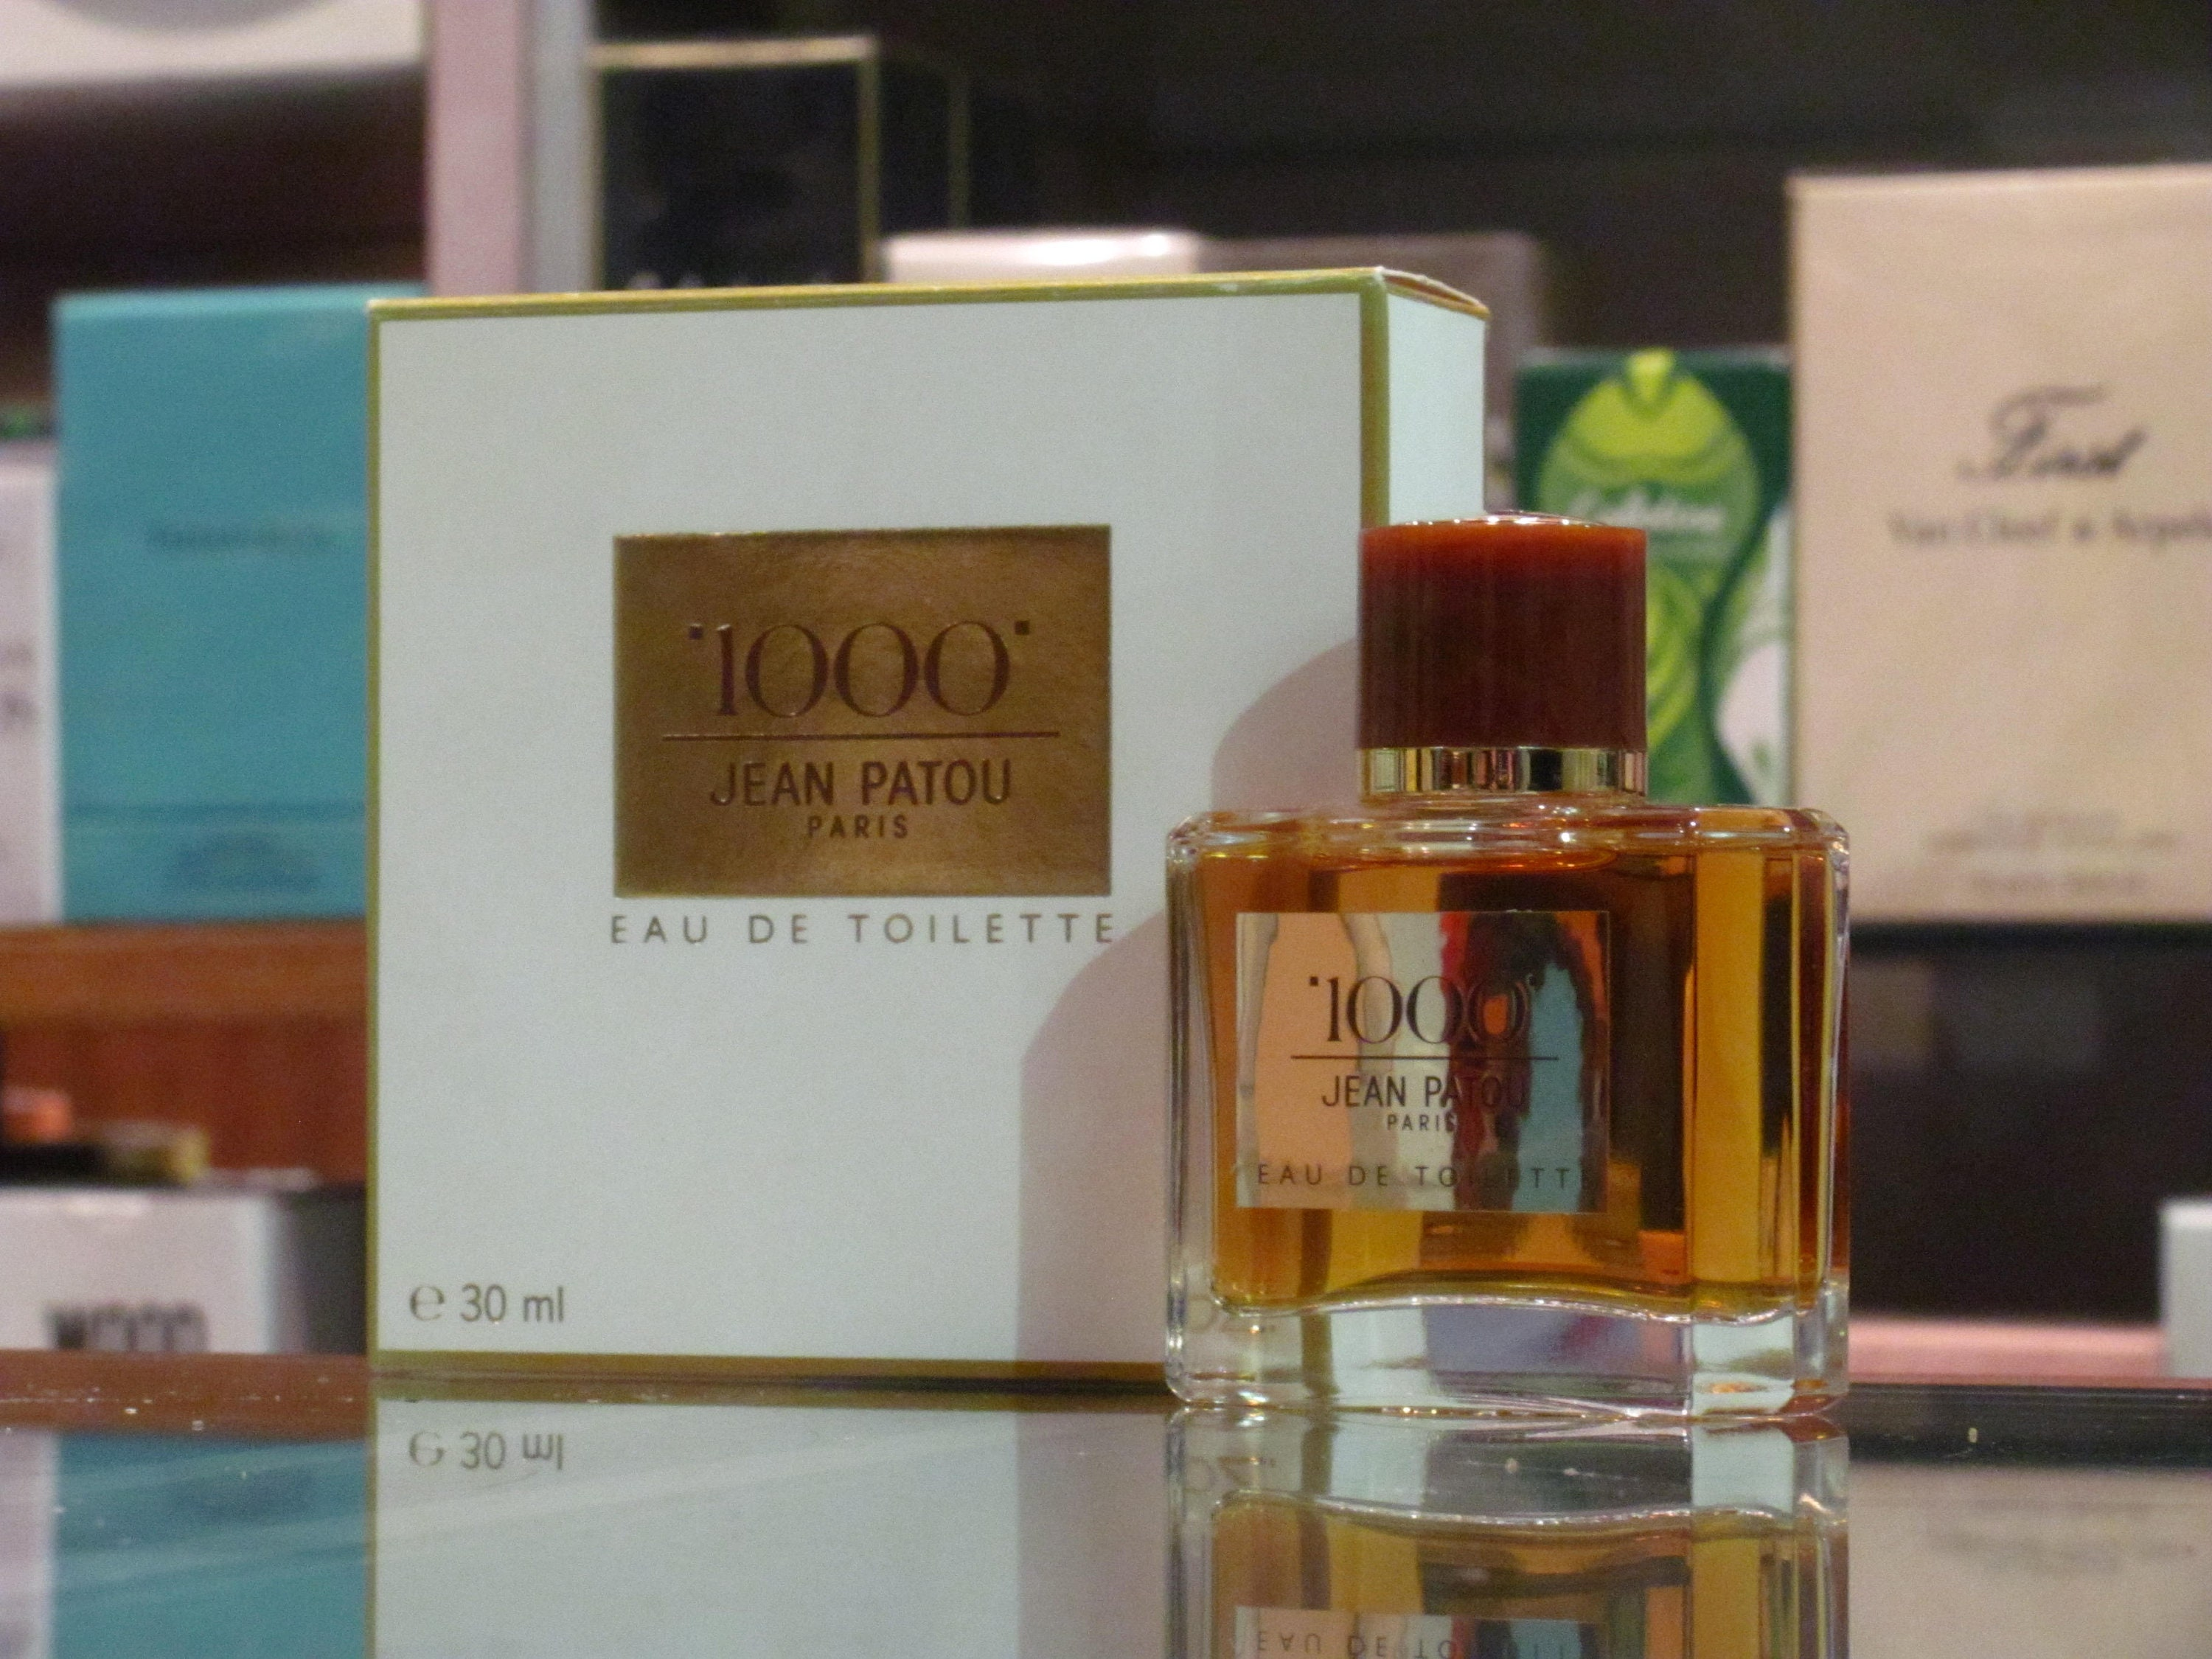 1000  Jean Patou Eau de Toilette 30ml Edt Splash  Very Rare